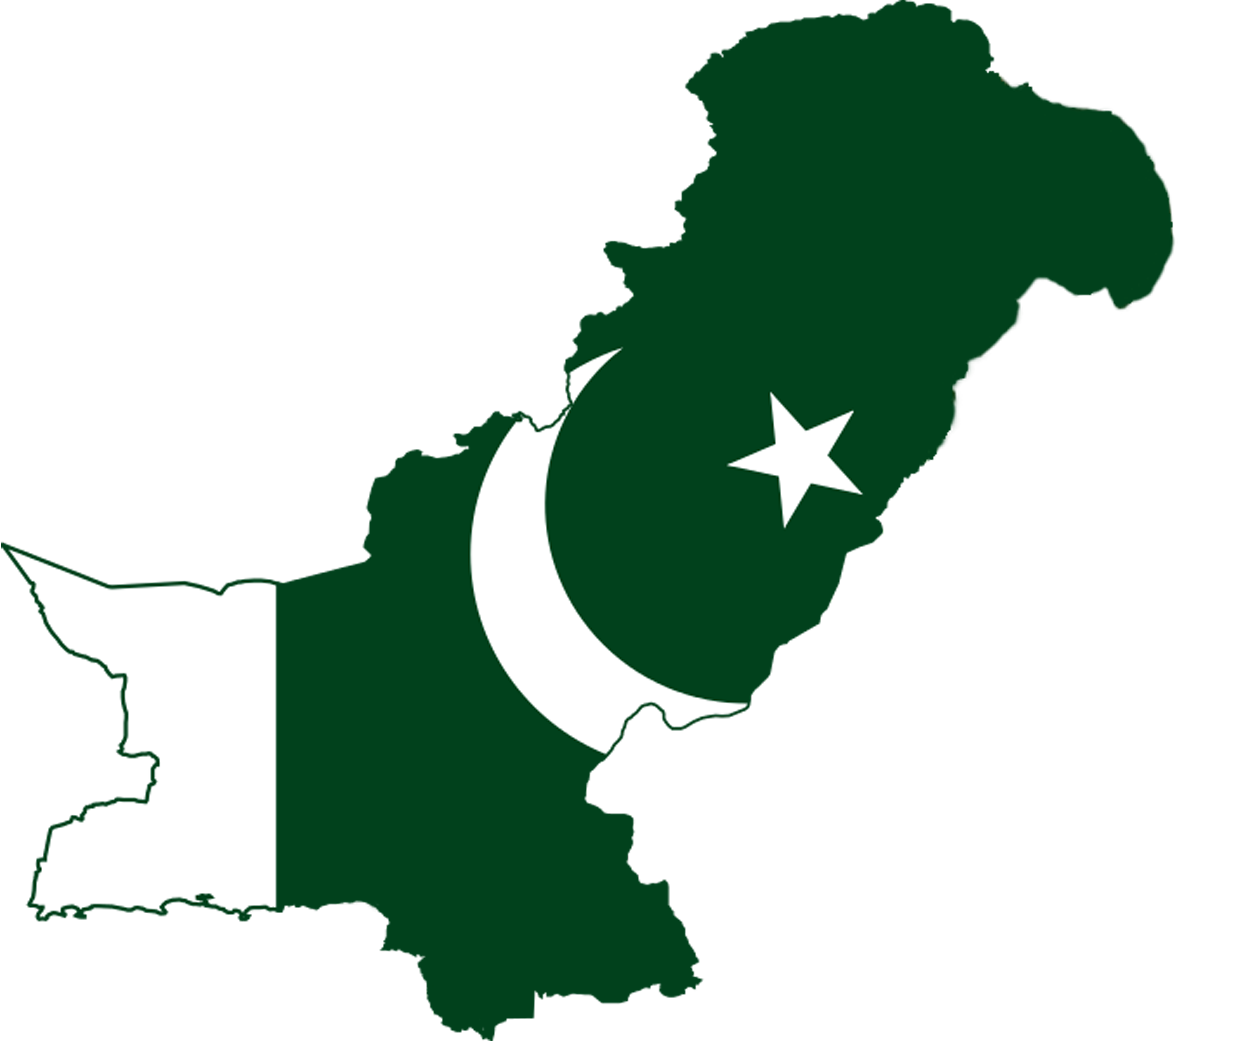 FileFlag Map Of Pakistanpng Wikimedia Commons - Map pakistan